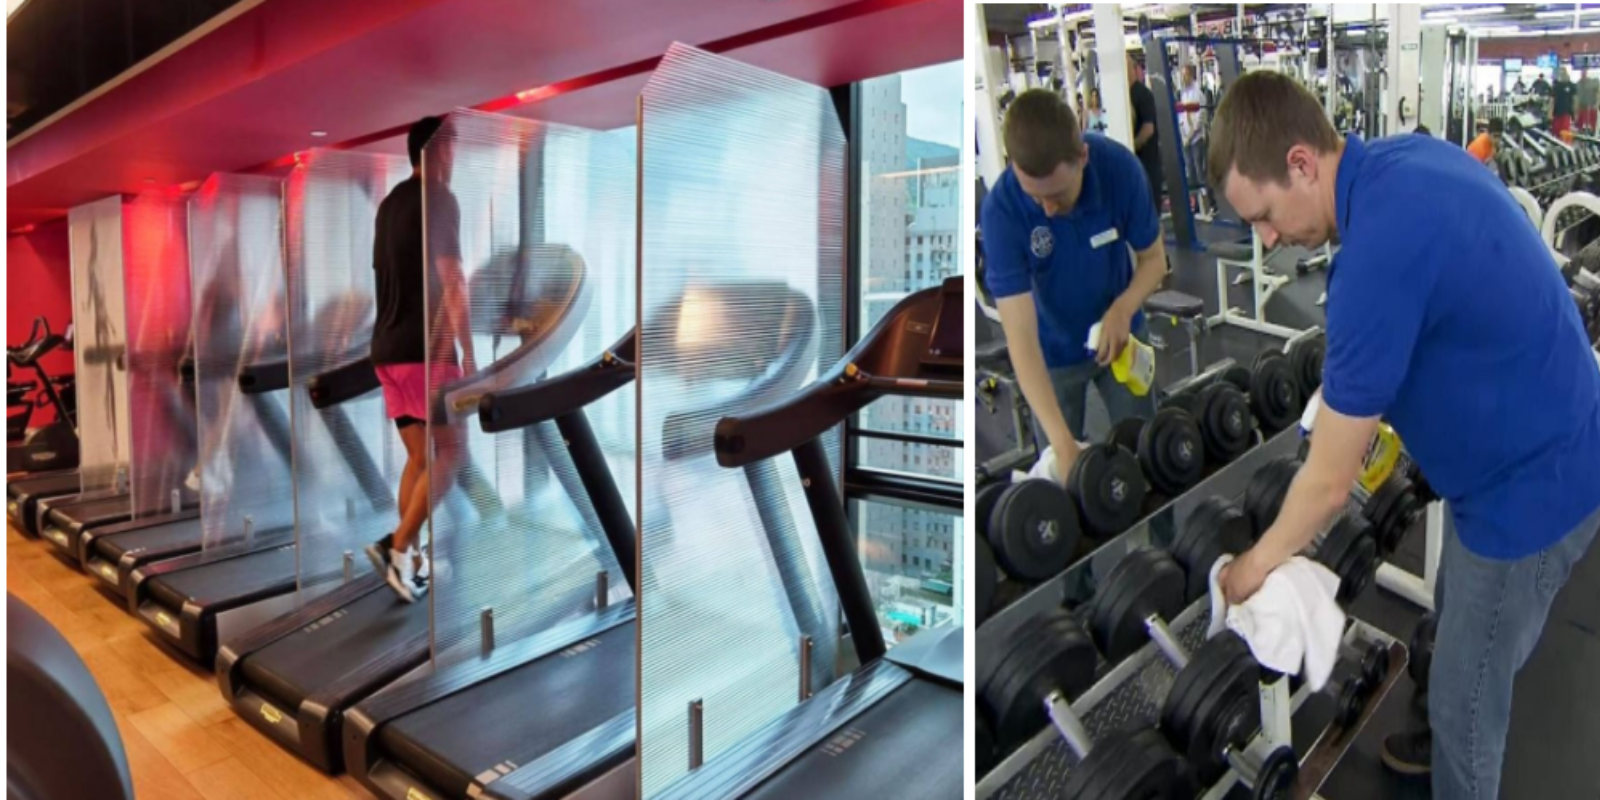 Study shows gyms are 500 times safer than the average public space